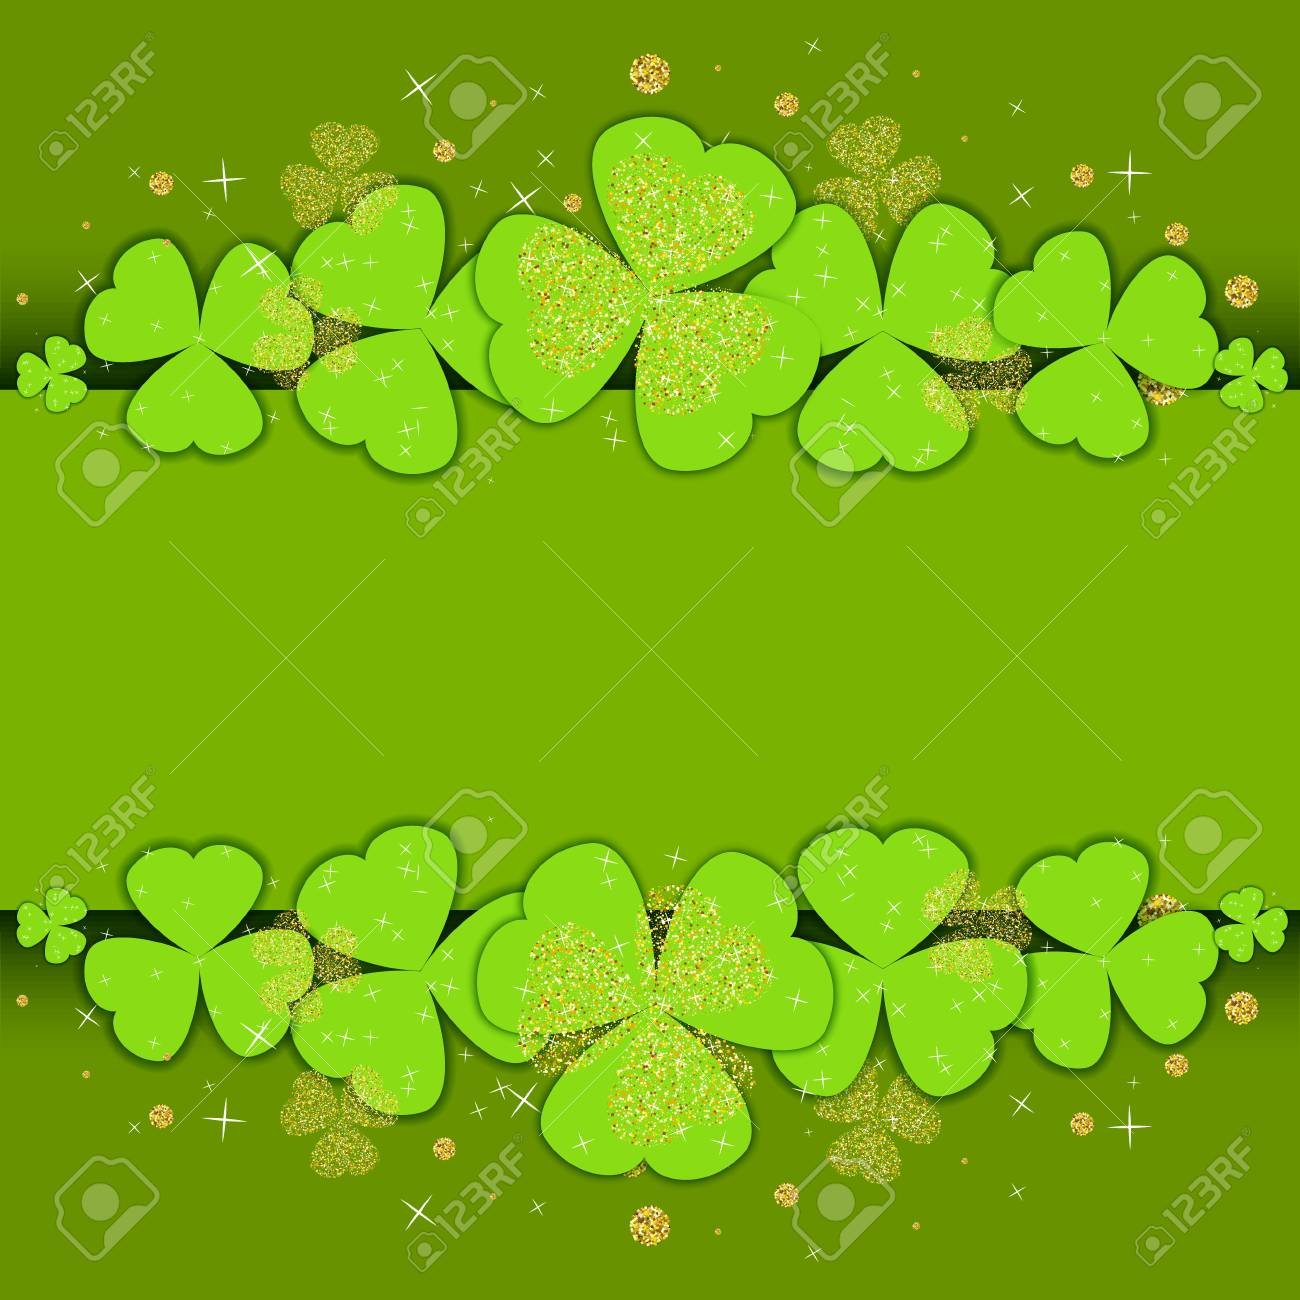 st patrick s day poster template with glitter clover and place